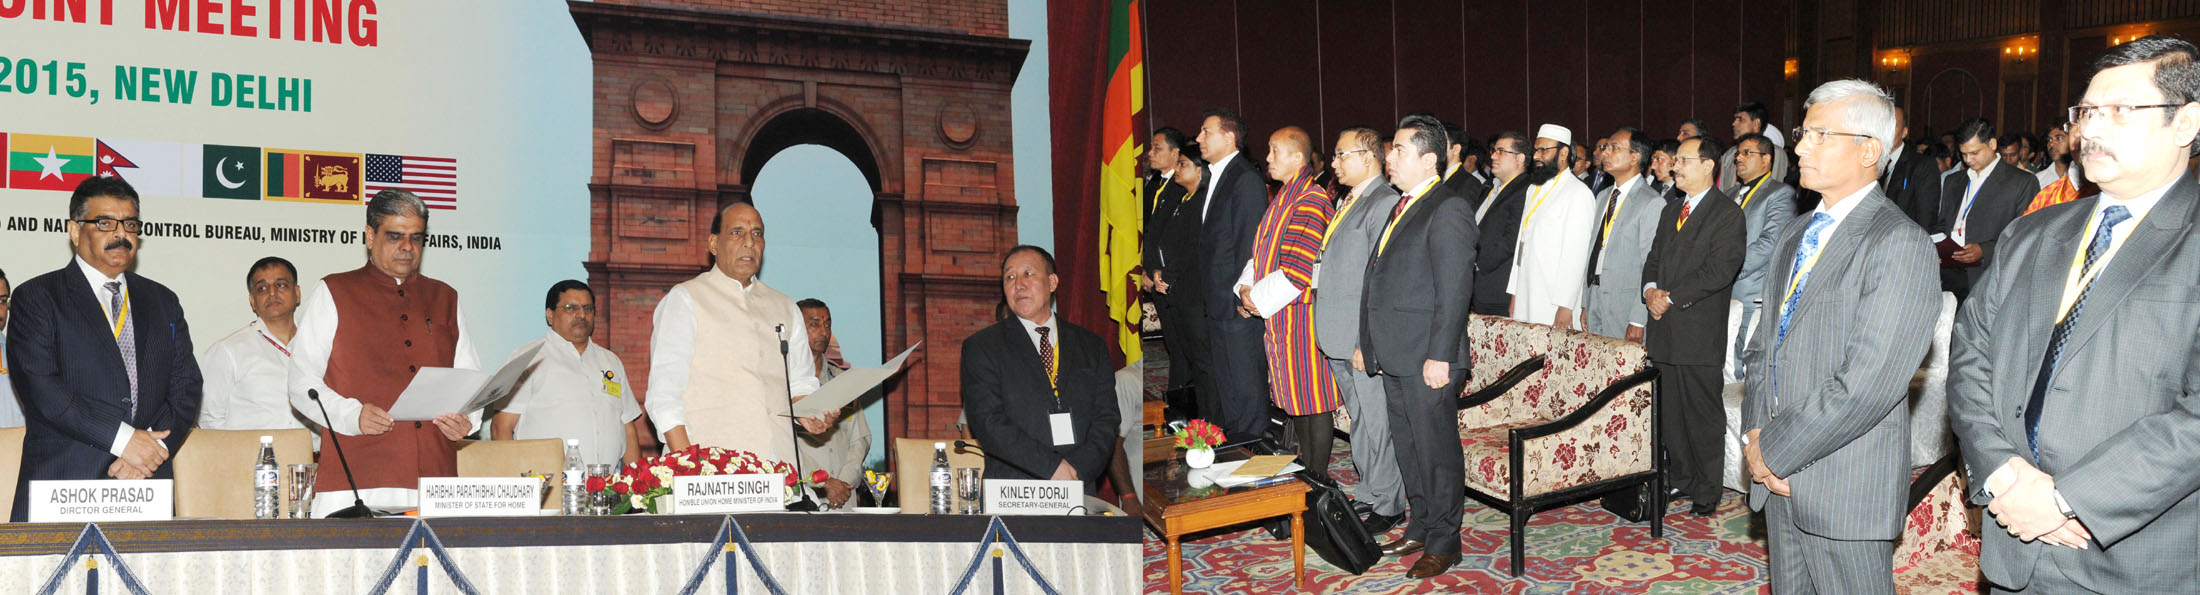 The Union Home Minister, Shri Rajnath Singh at the inauguration of a three-day workshop on Sub-Regional Drug 'Focal Point Meeting and DDR Expert Group Consultation, South Asia under Colombo Plan Drug Advisory Programme', in New Delhi on September 09, 2015.   The Minister of State for Home Affairs, Shri Haribhai Parthibhai Chaudhary and other dignitaries are also seen.